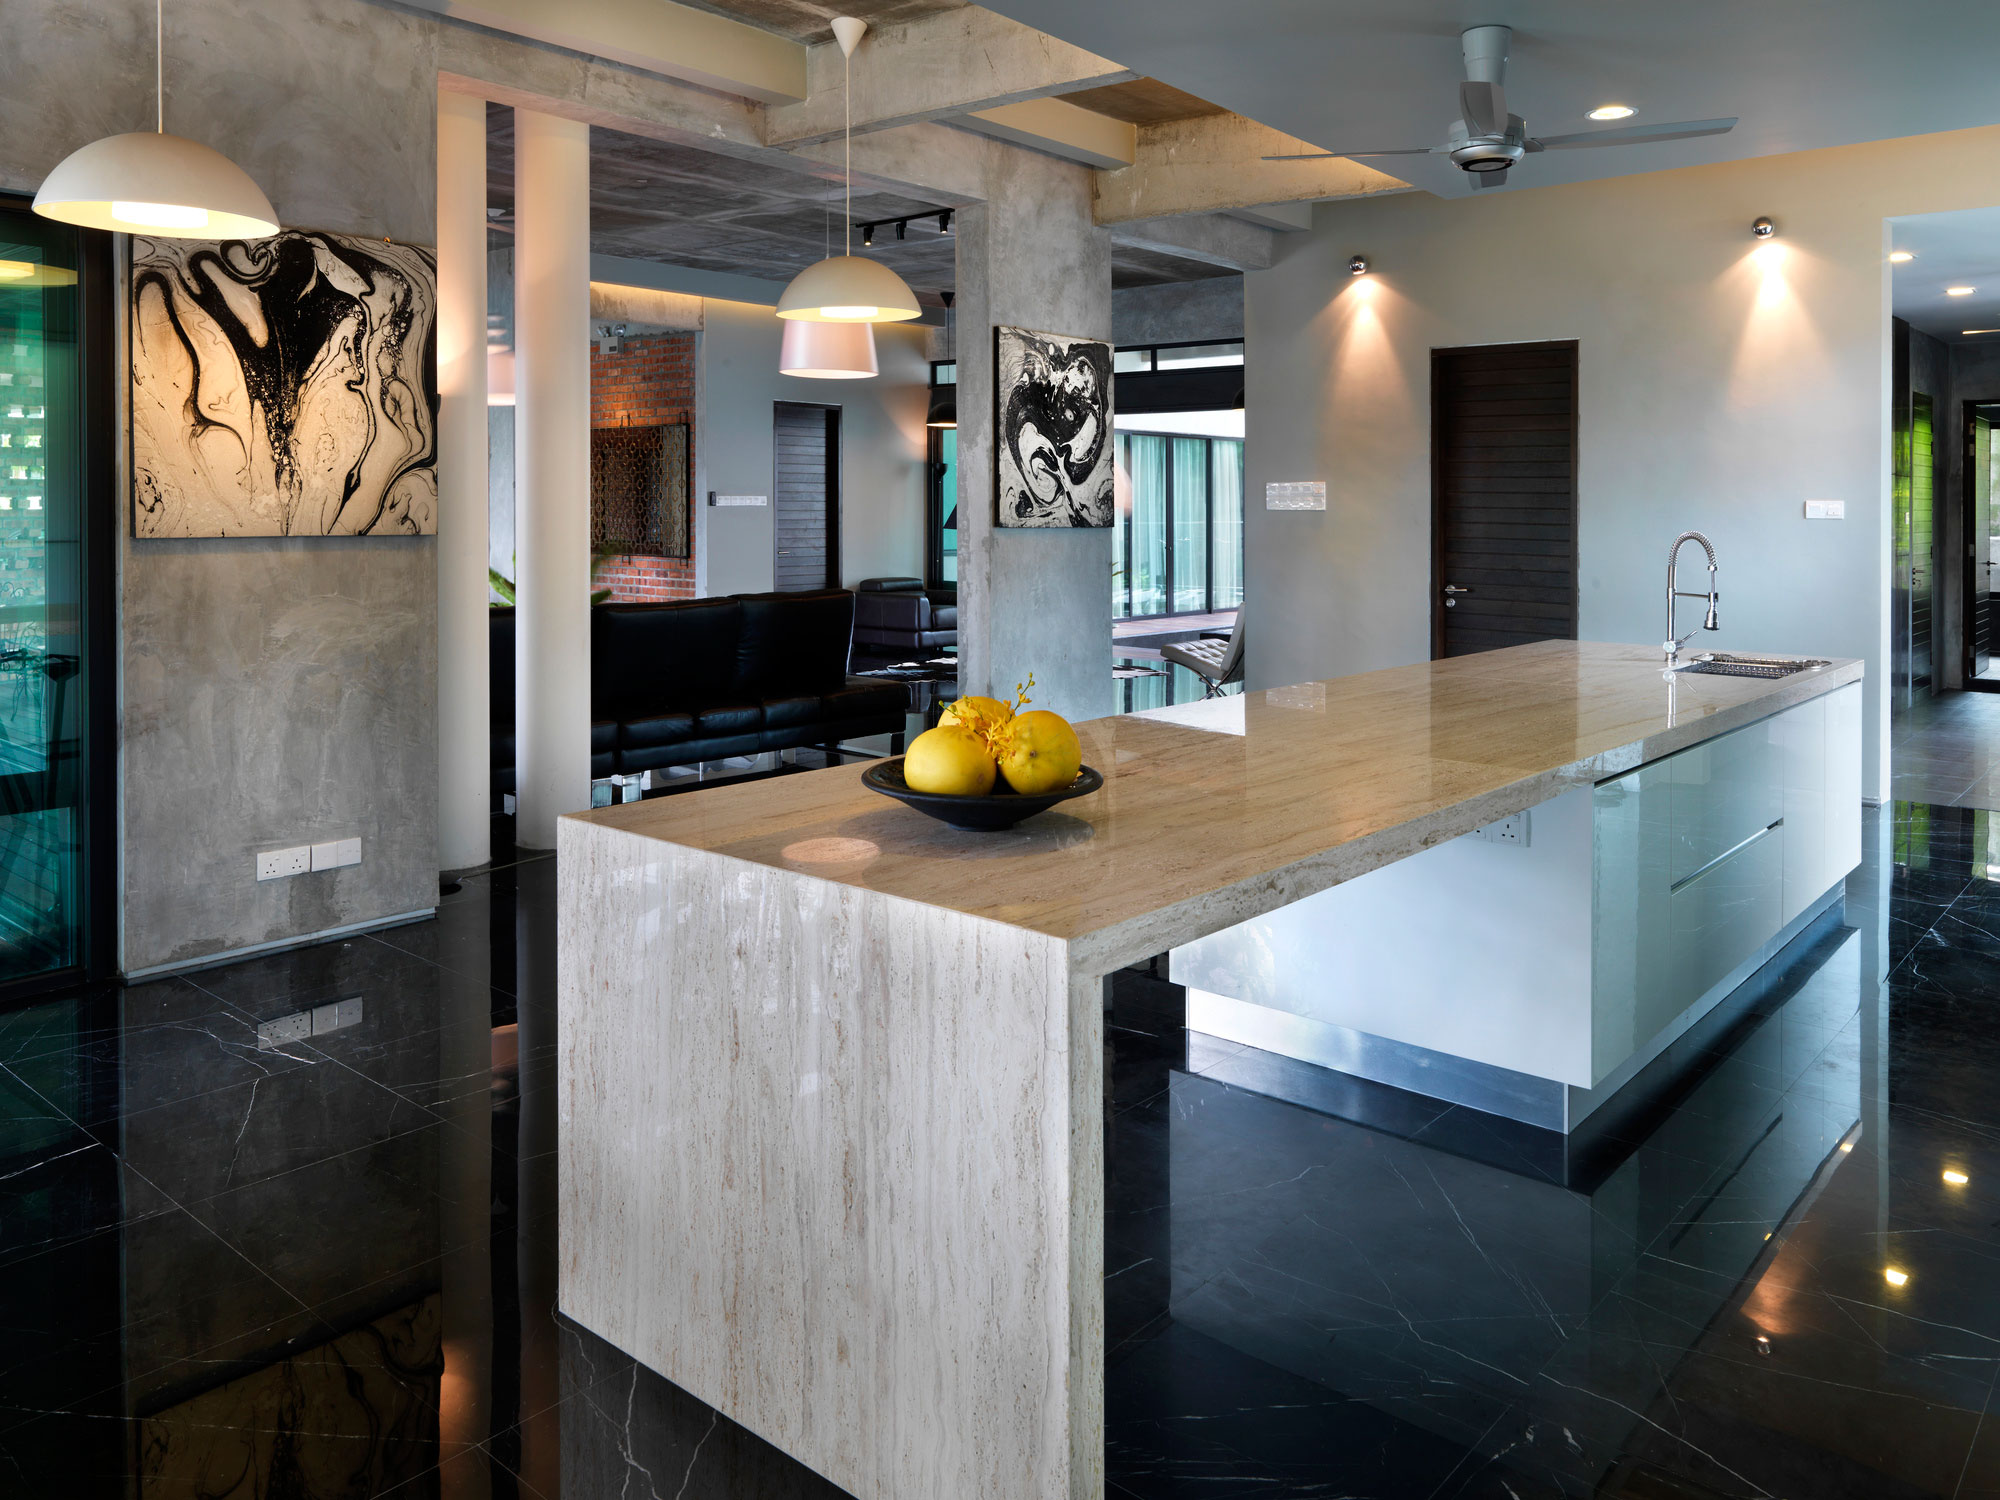 S11 House by ArchiCentre (4)